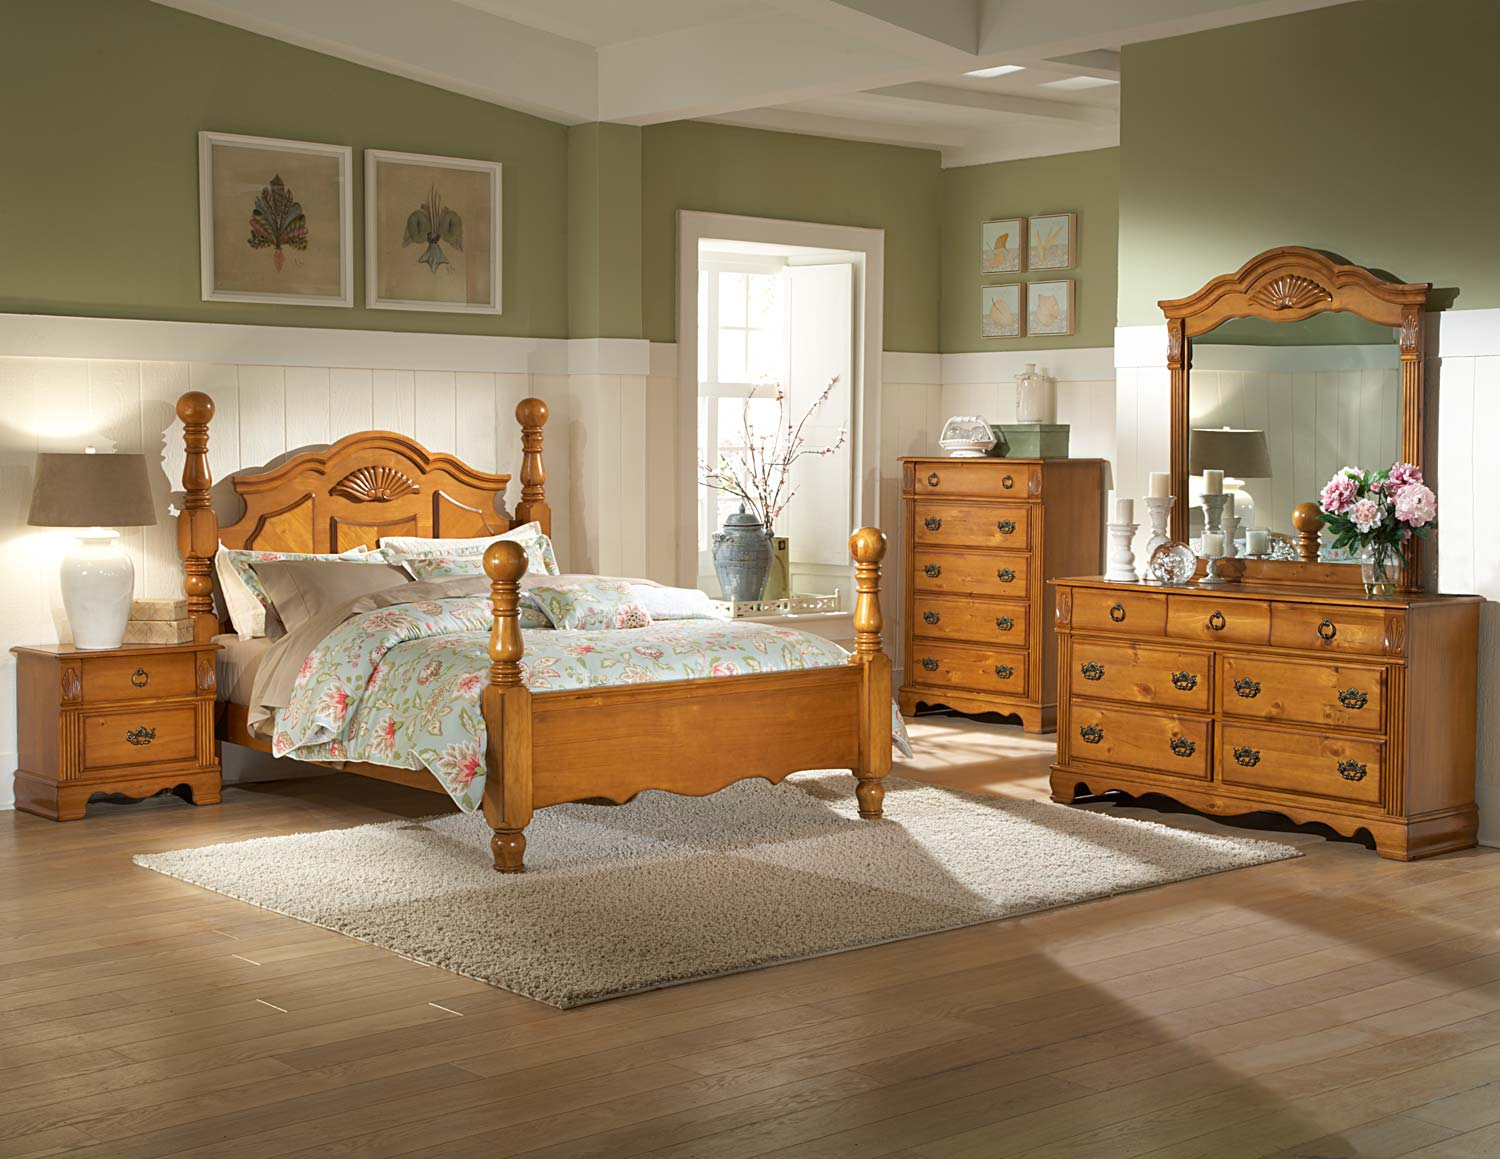 bedroom ideas with pine furniture photo - 5